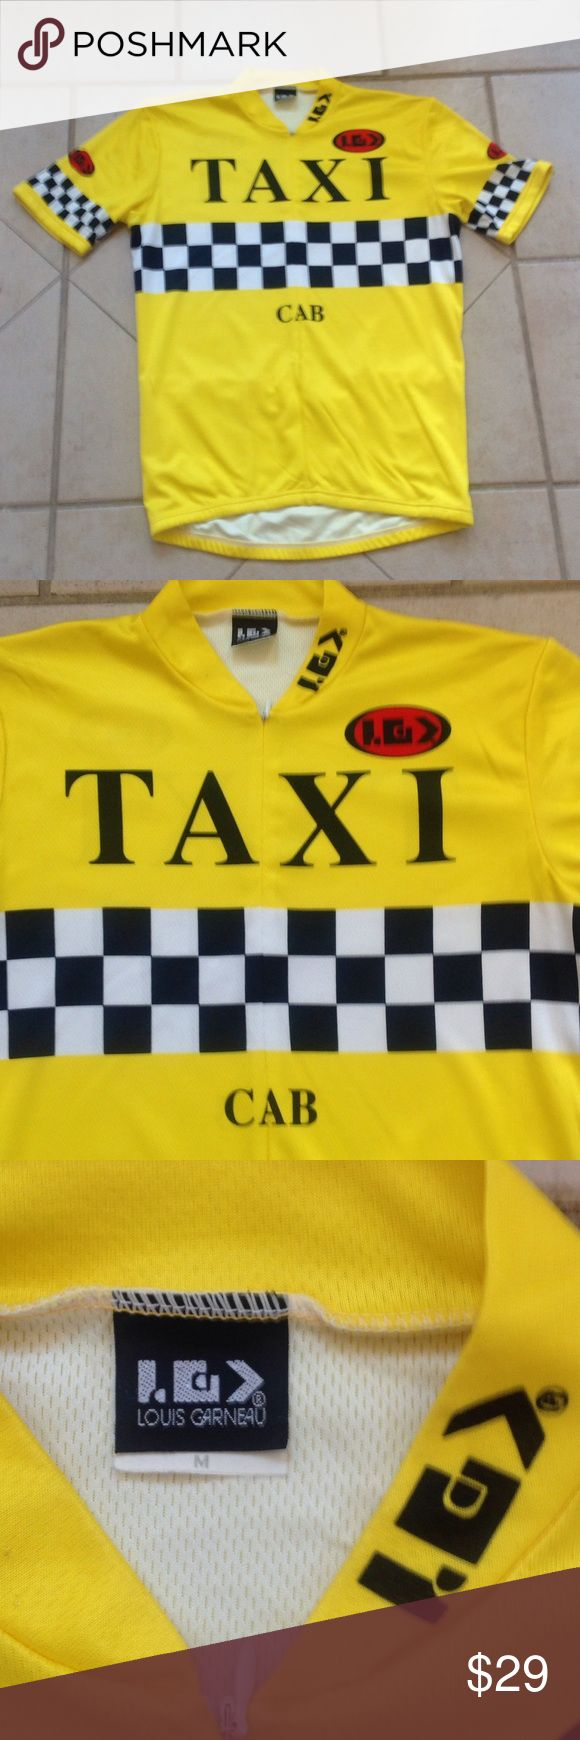 LOUIS GARNEAU Cycling Bike Top.  Sz M LOUIS GARNEAU Yellow TAXI Cycling/Bike Jersey Top that measures 29 inches from armpit to armpit; and is 29 inches in overall length. louis garneau Other